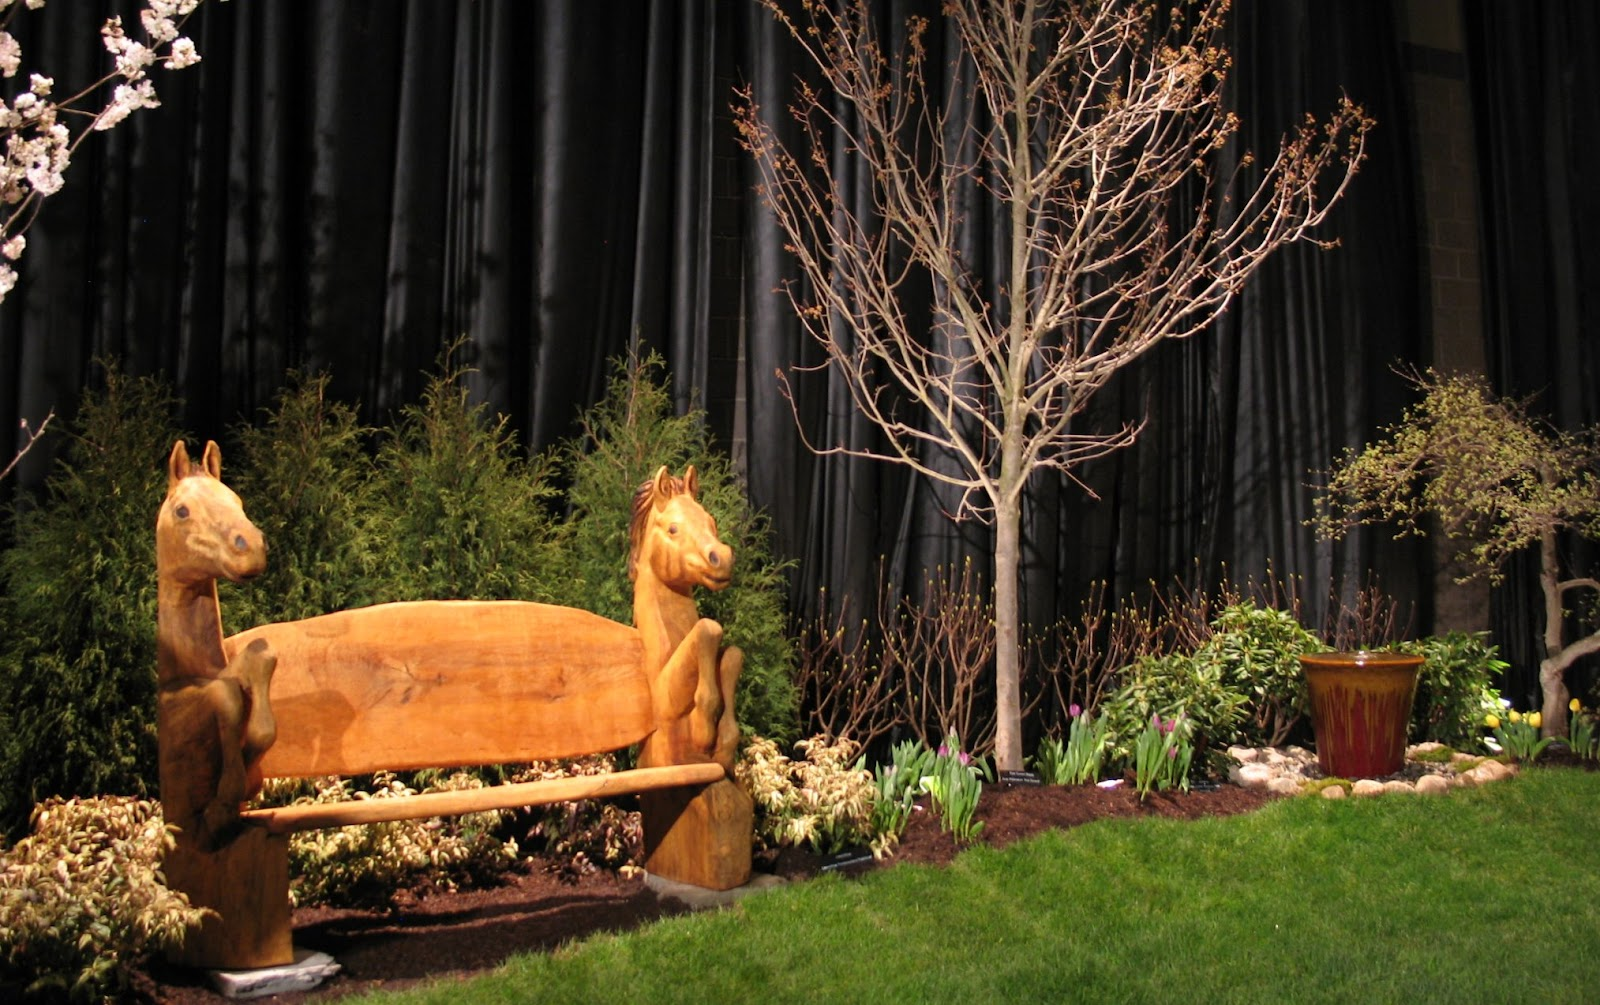 Idyll Haven: Connecticut Flower & Garden Show